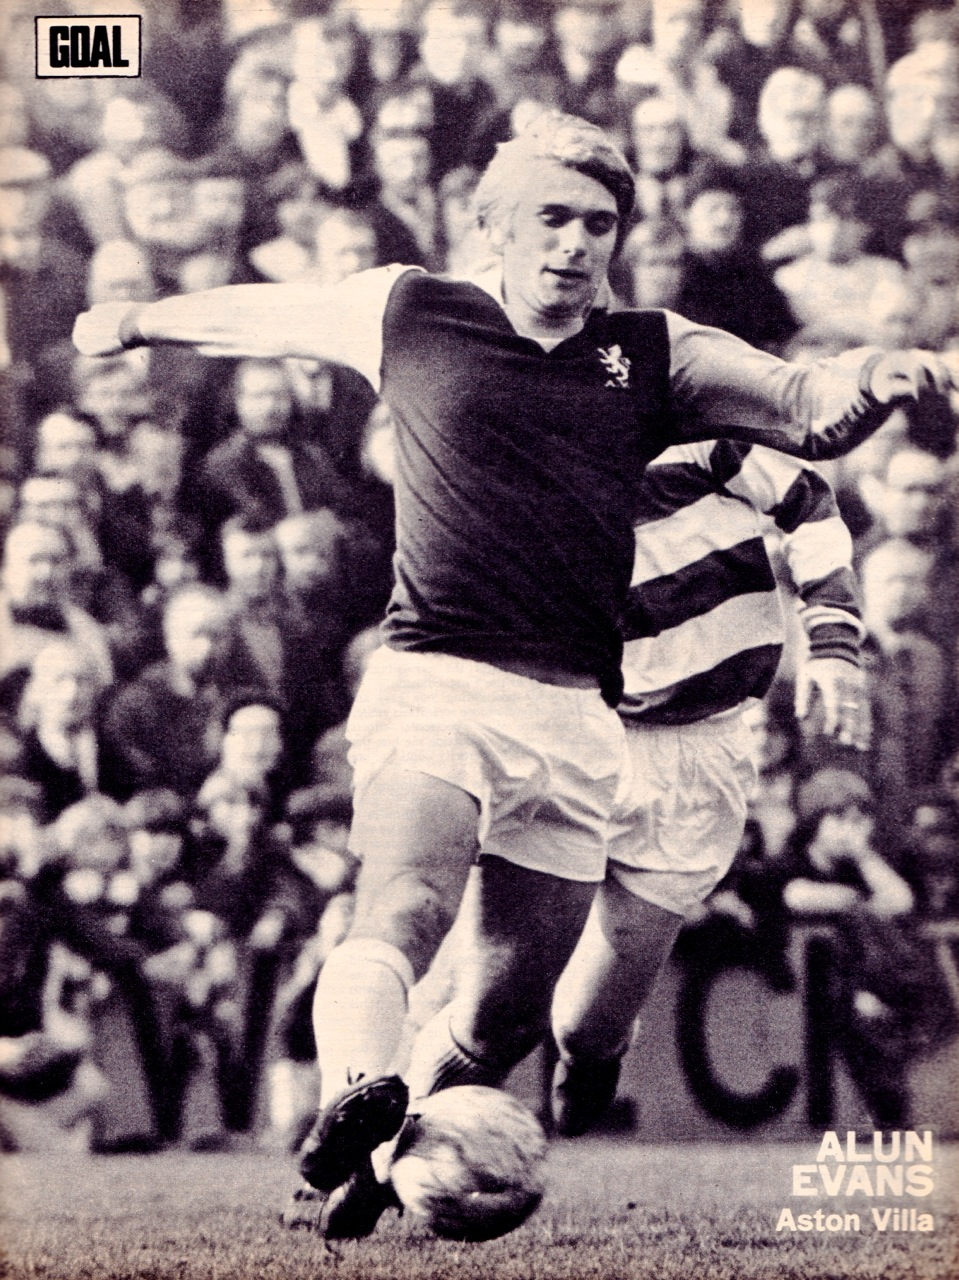 Poster of Evans in an Aston Villa shirt 1973